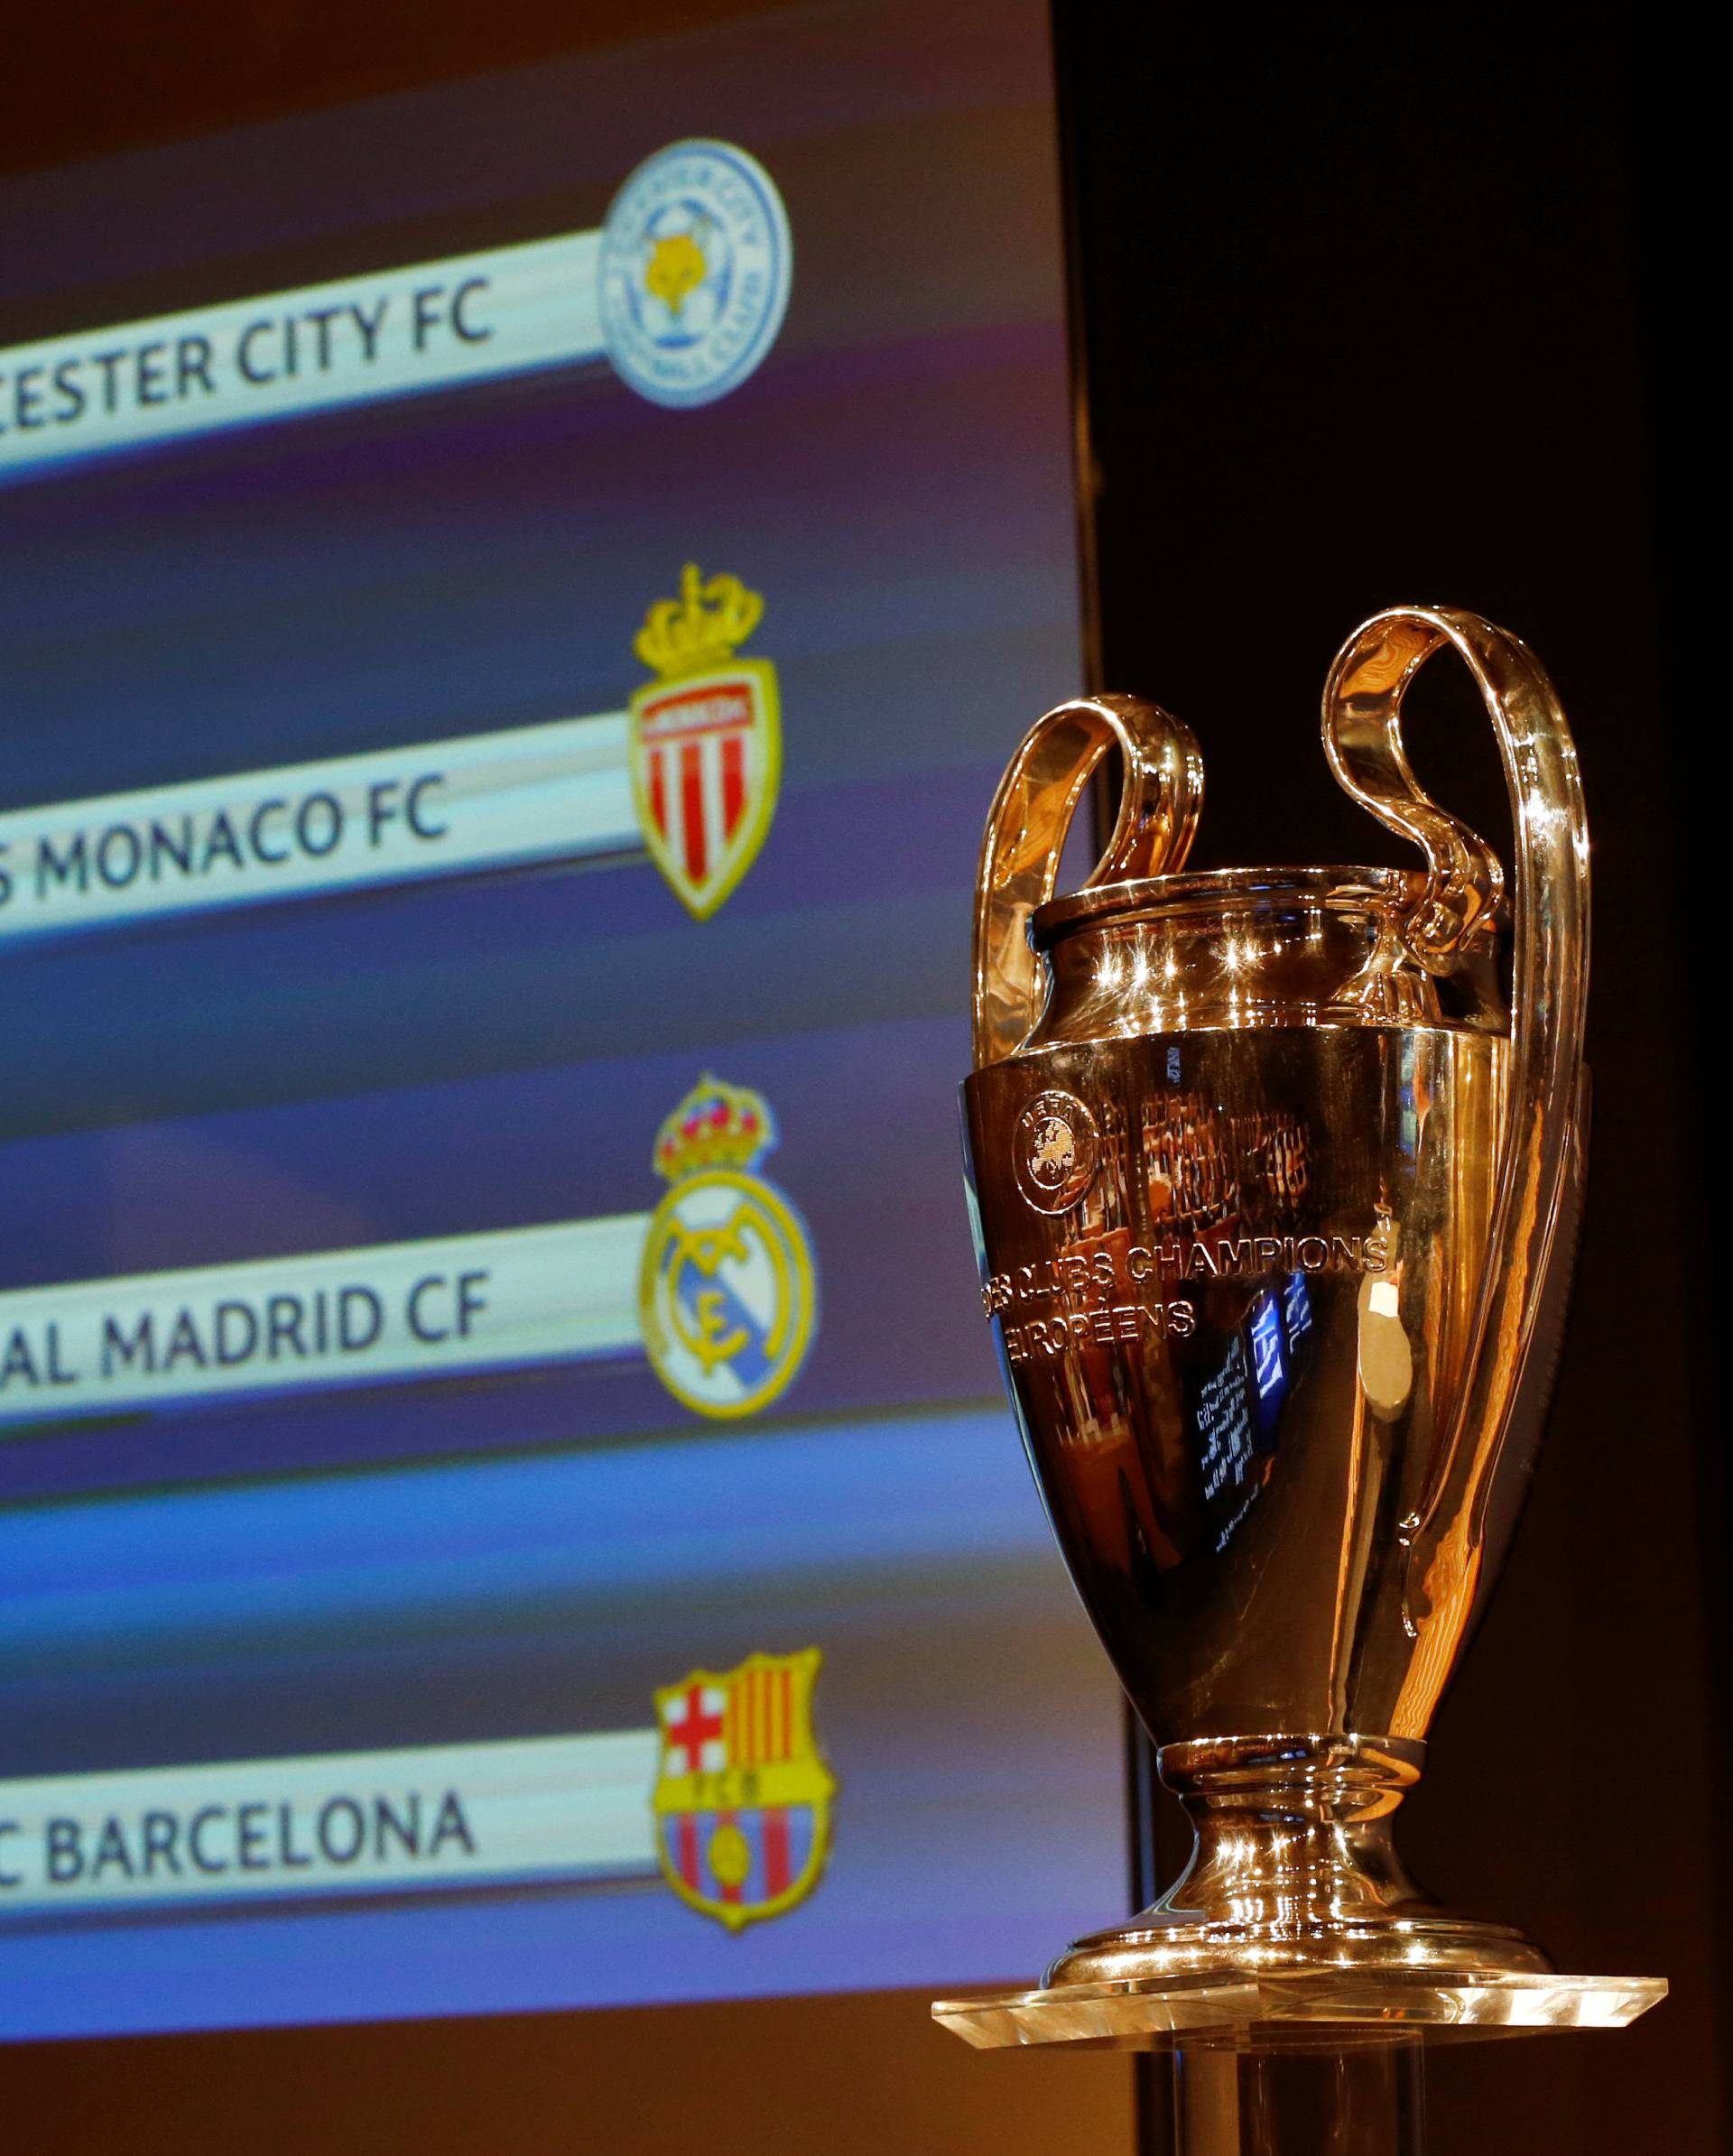 The UEFA Champions League trophy is pictured after the draw of the quarterfinals in Nyon